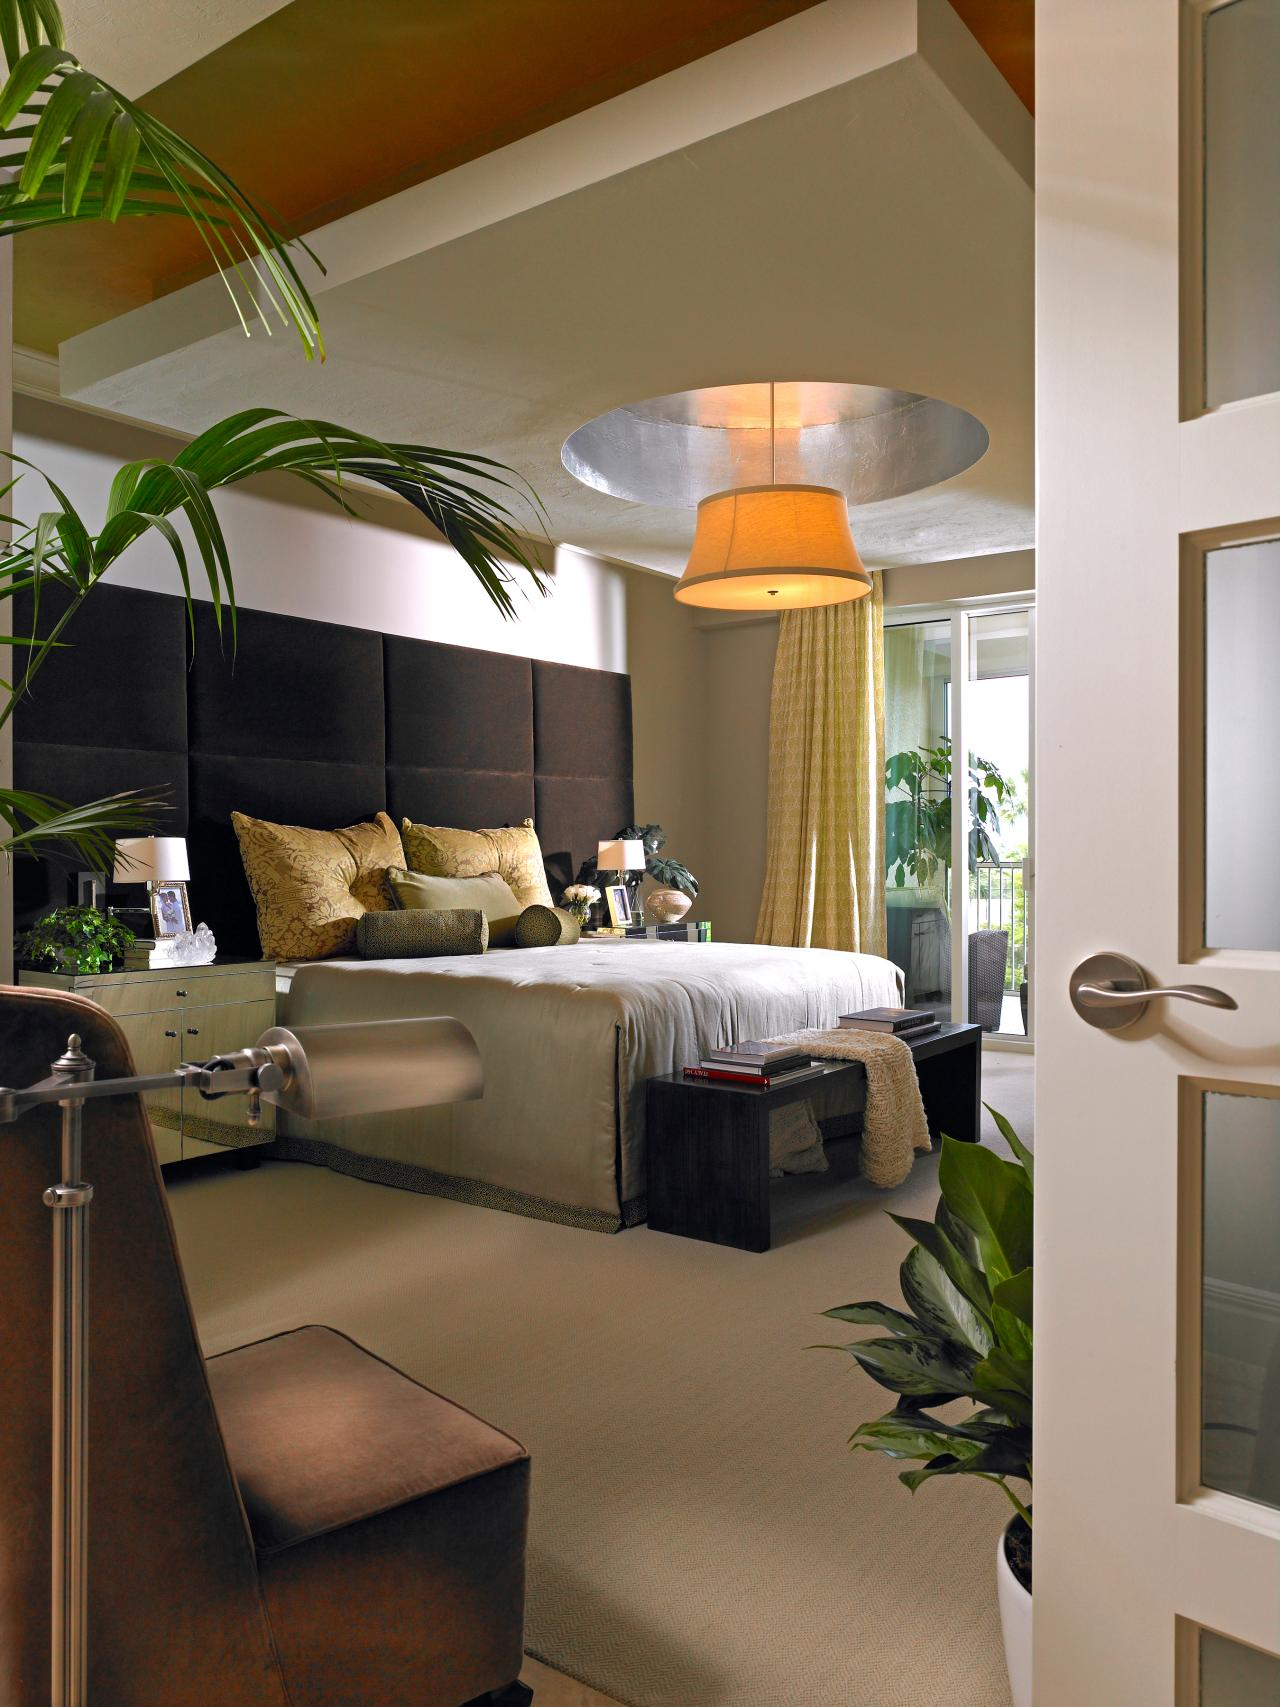 bedroom wall color schemes pictures options ideas hgtv on master bedroom wall color id=26012